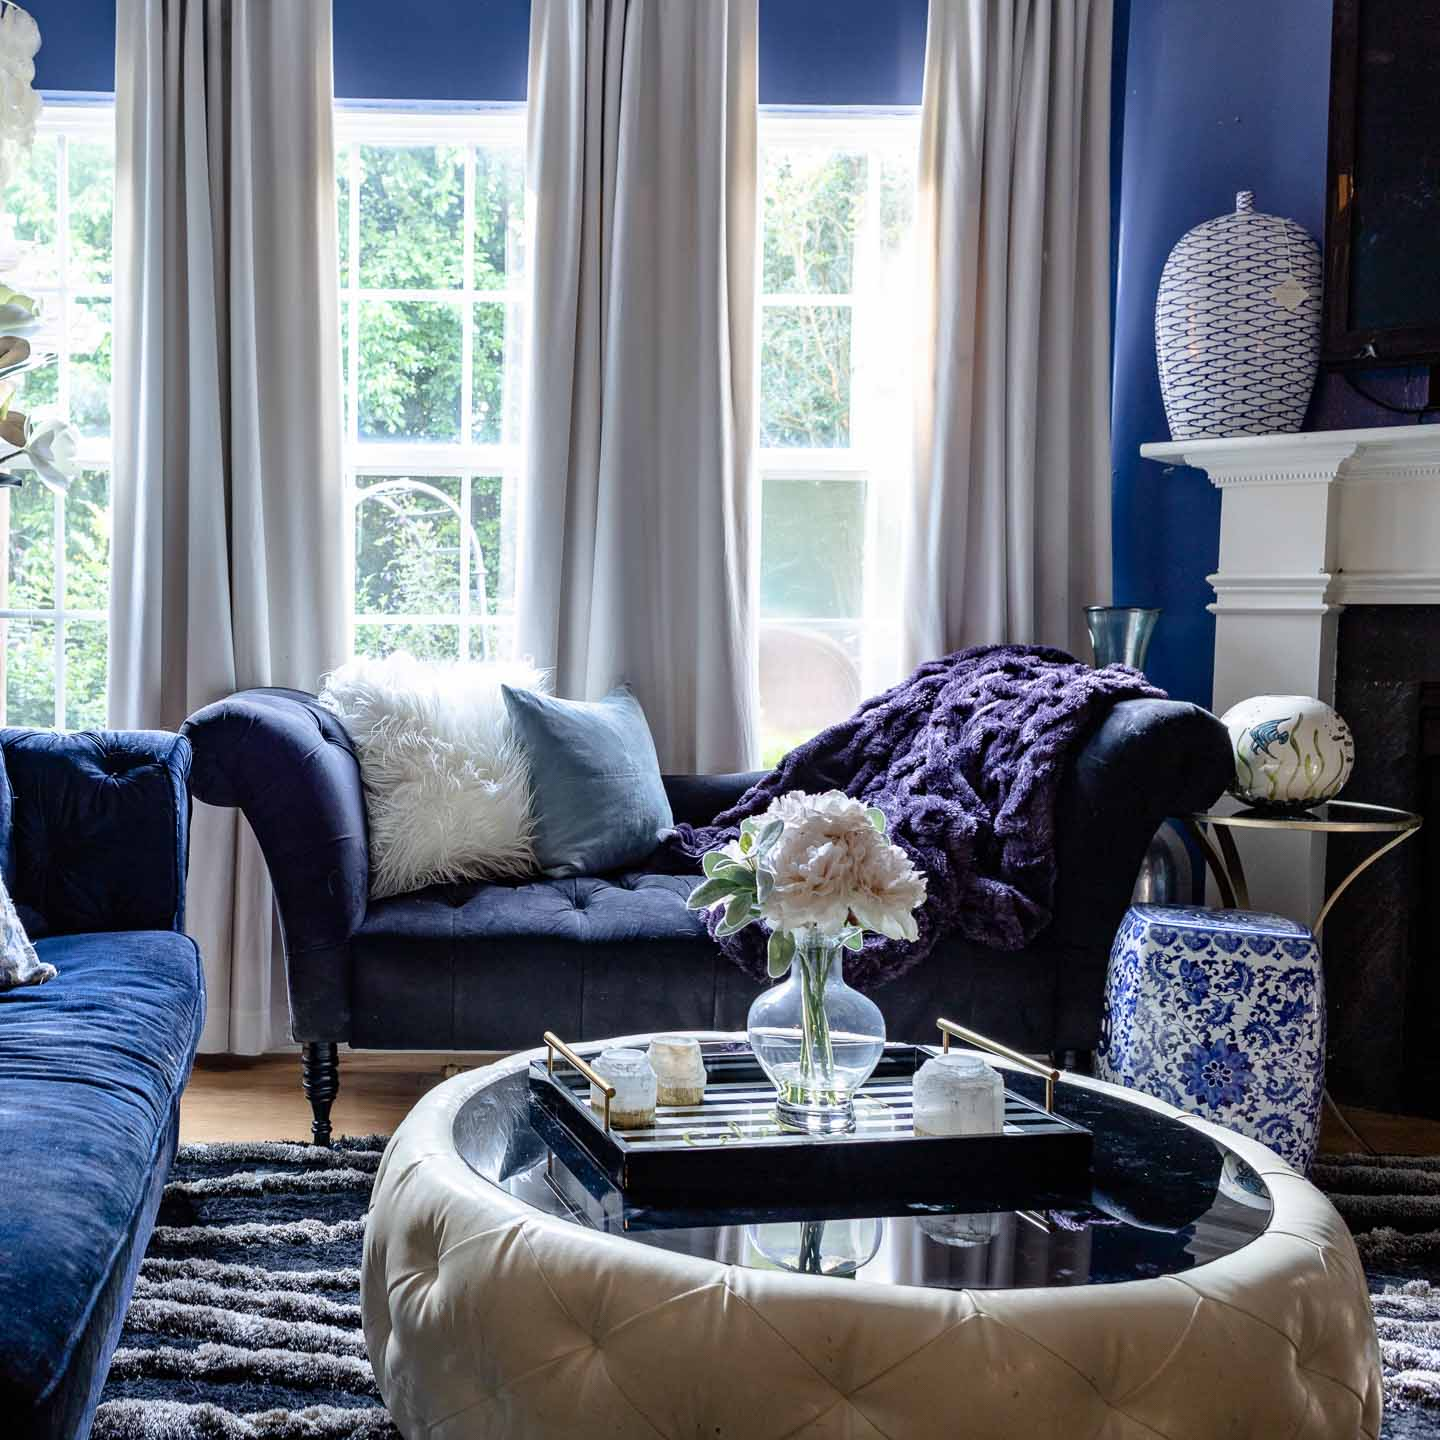 Home Design Ideas Colors: Blue And White Decorating Ideas: 10 Ways To Decorate With